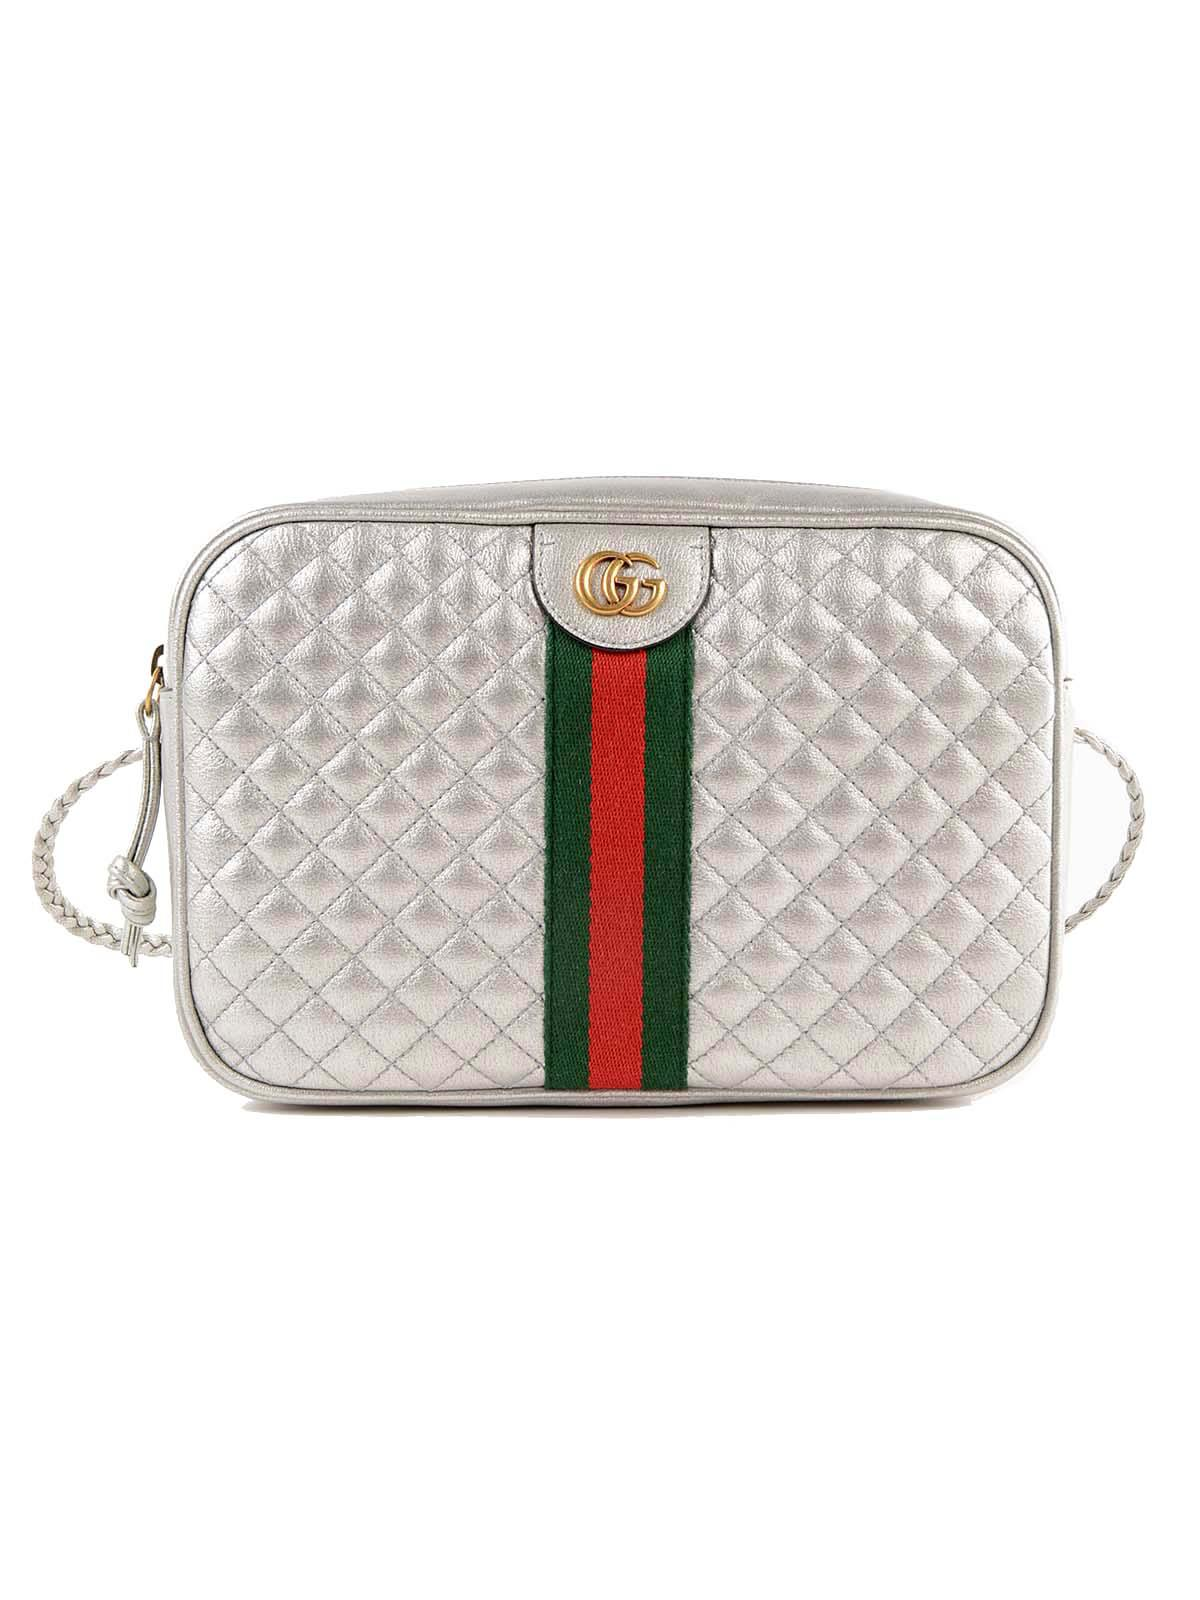 d4404df94e1 Gucci. Women s Quilted Bag